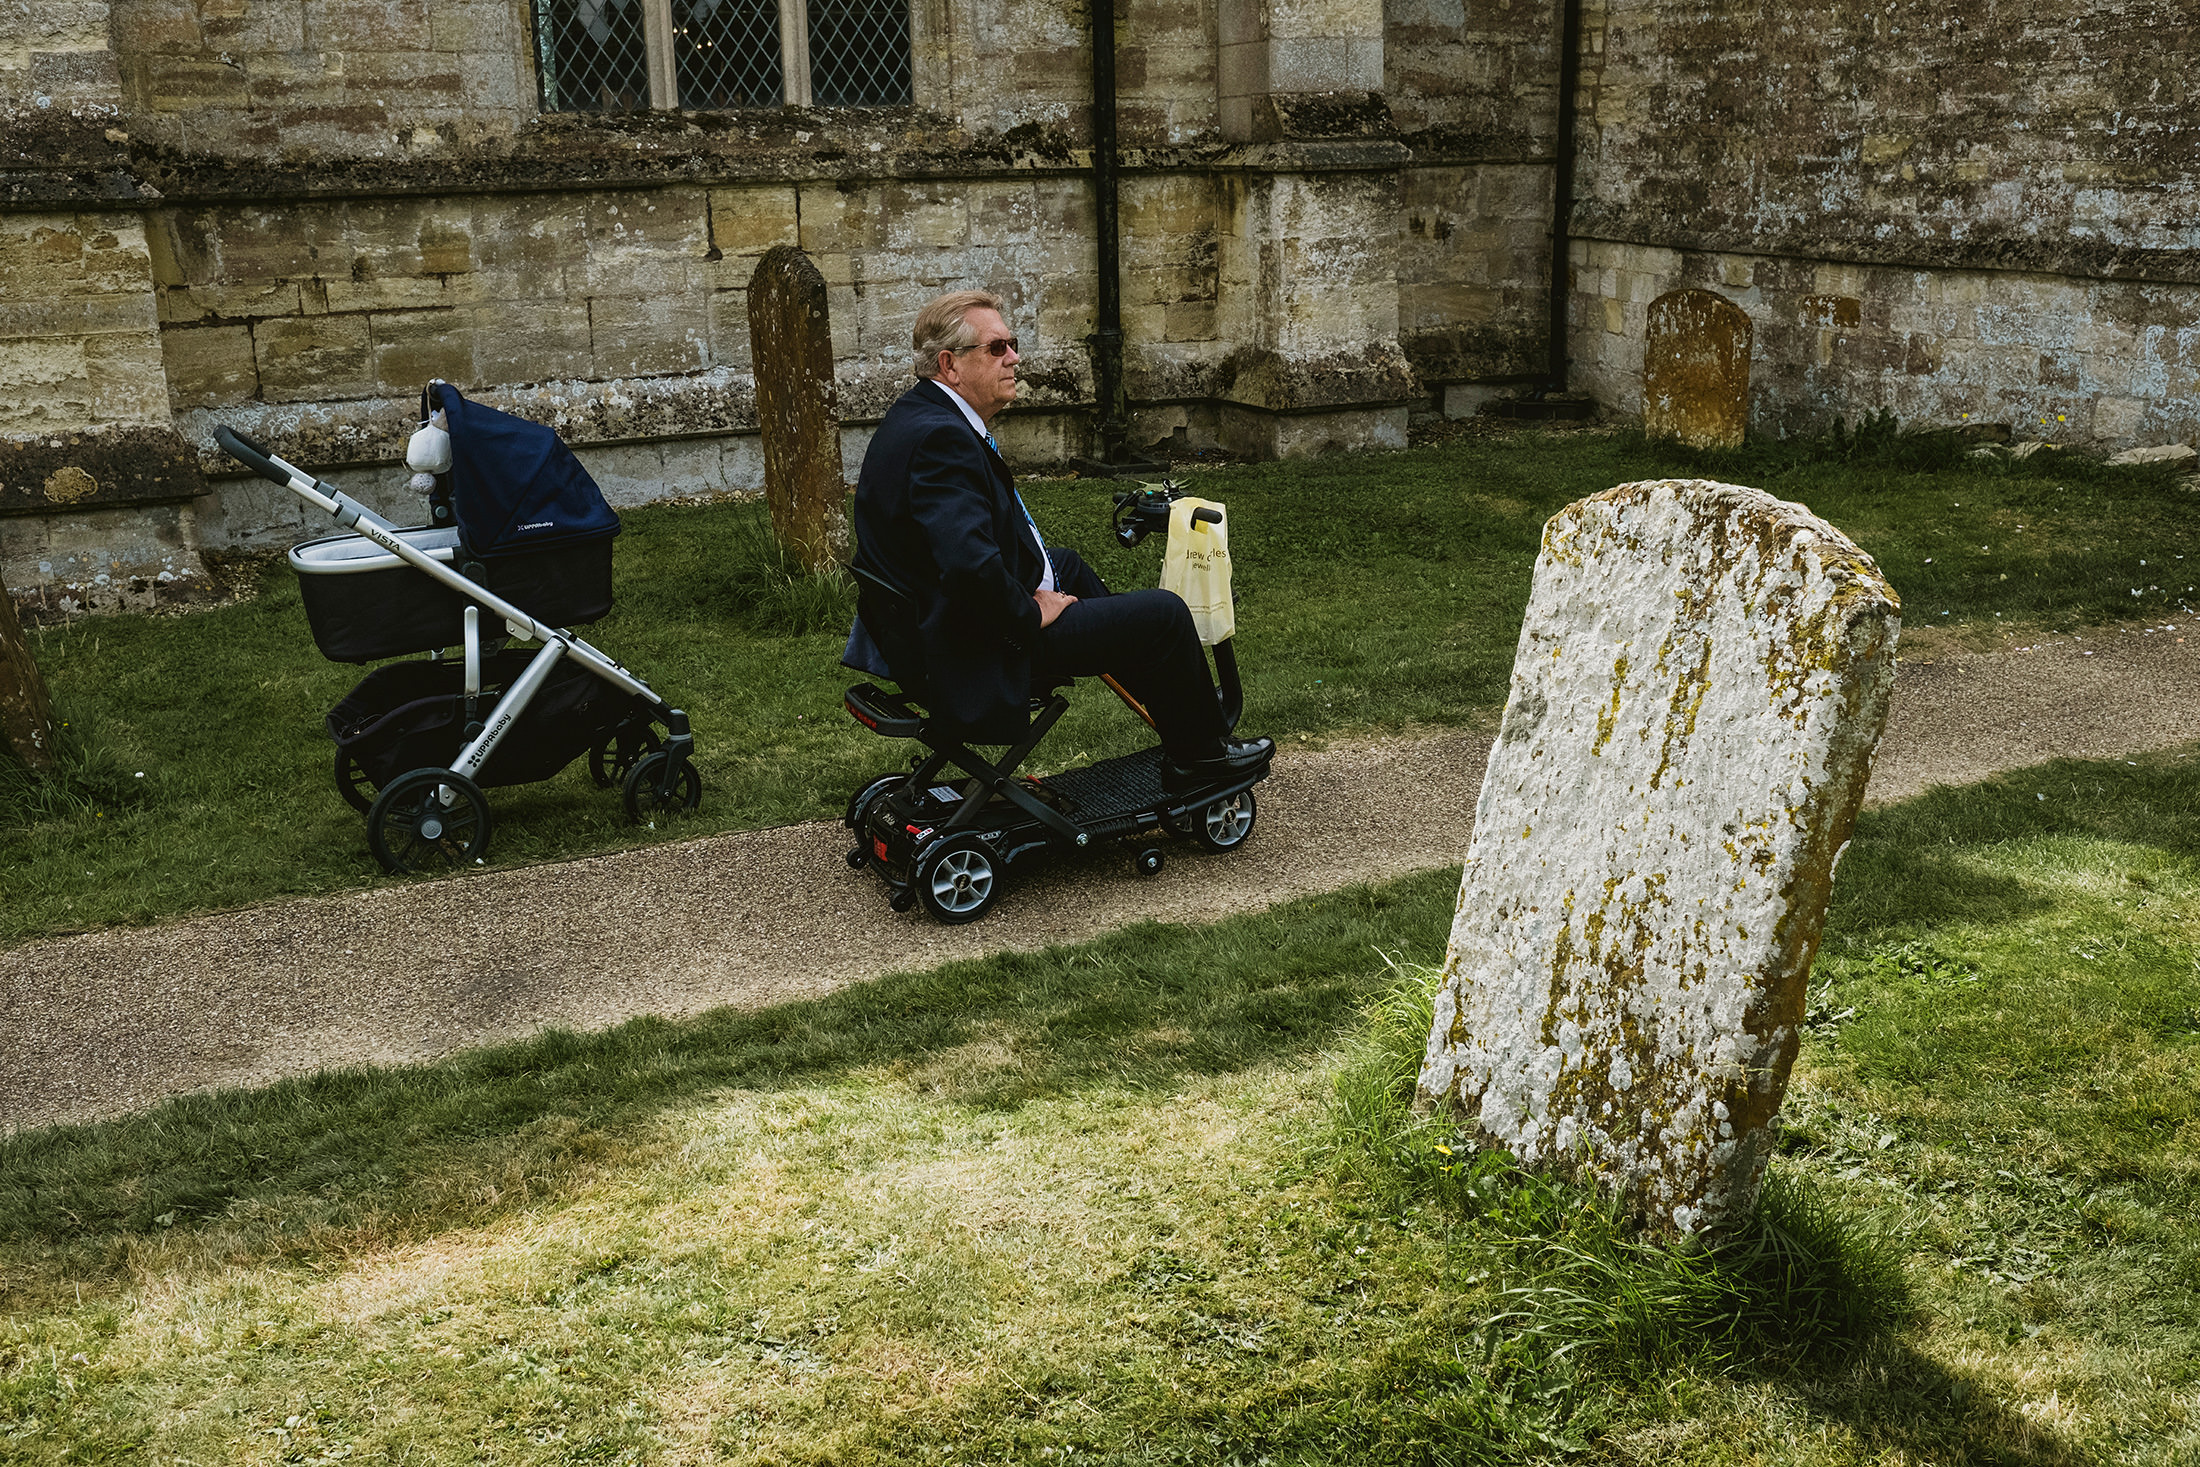 man in a wheelchair in a graveyard, symbolises the circle of life